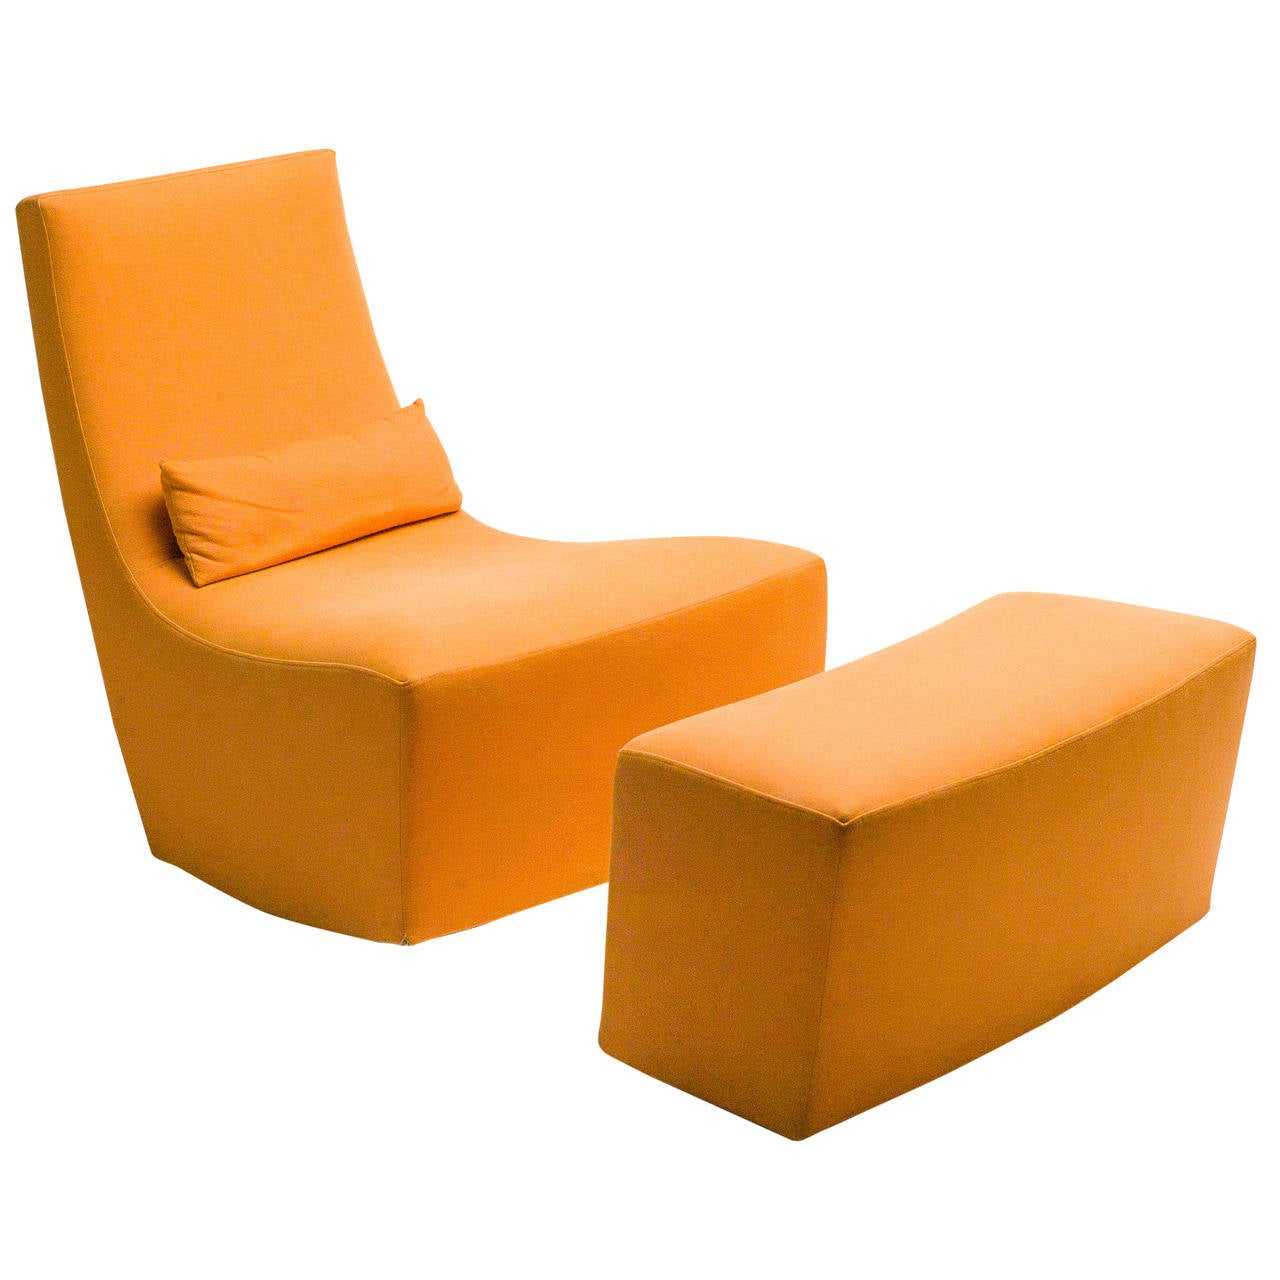 Rocking Lounge Chair and Ottoman by Ligne Roset at 1stdibs